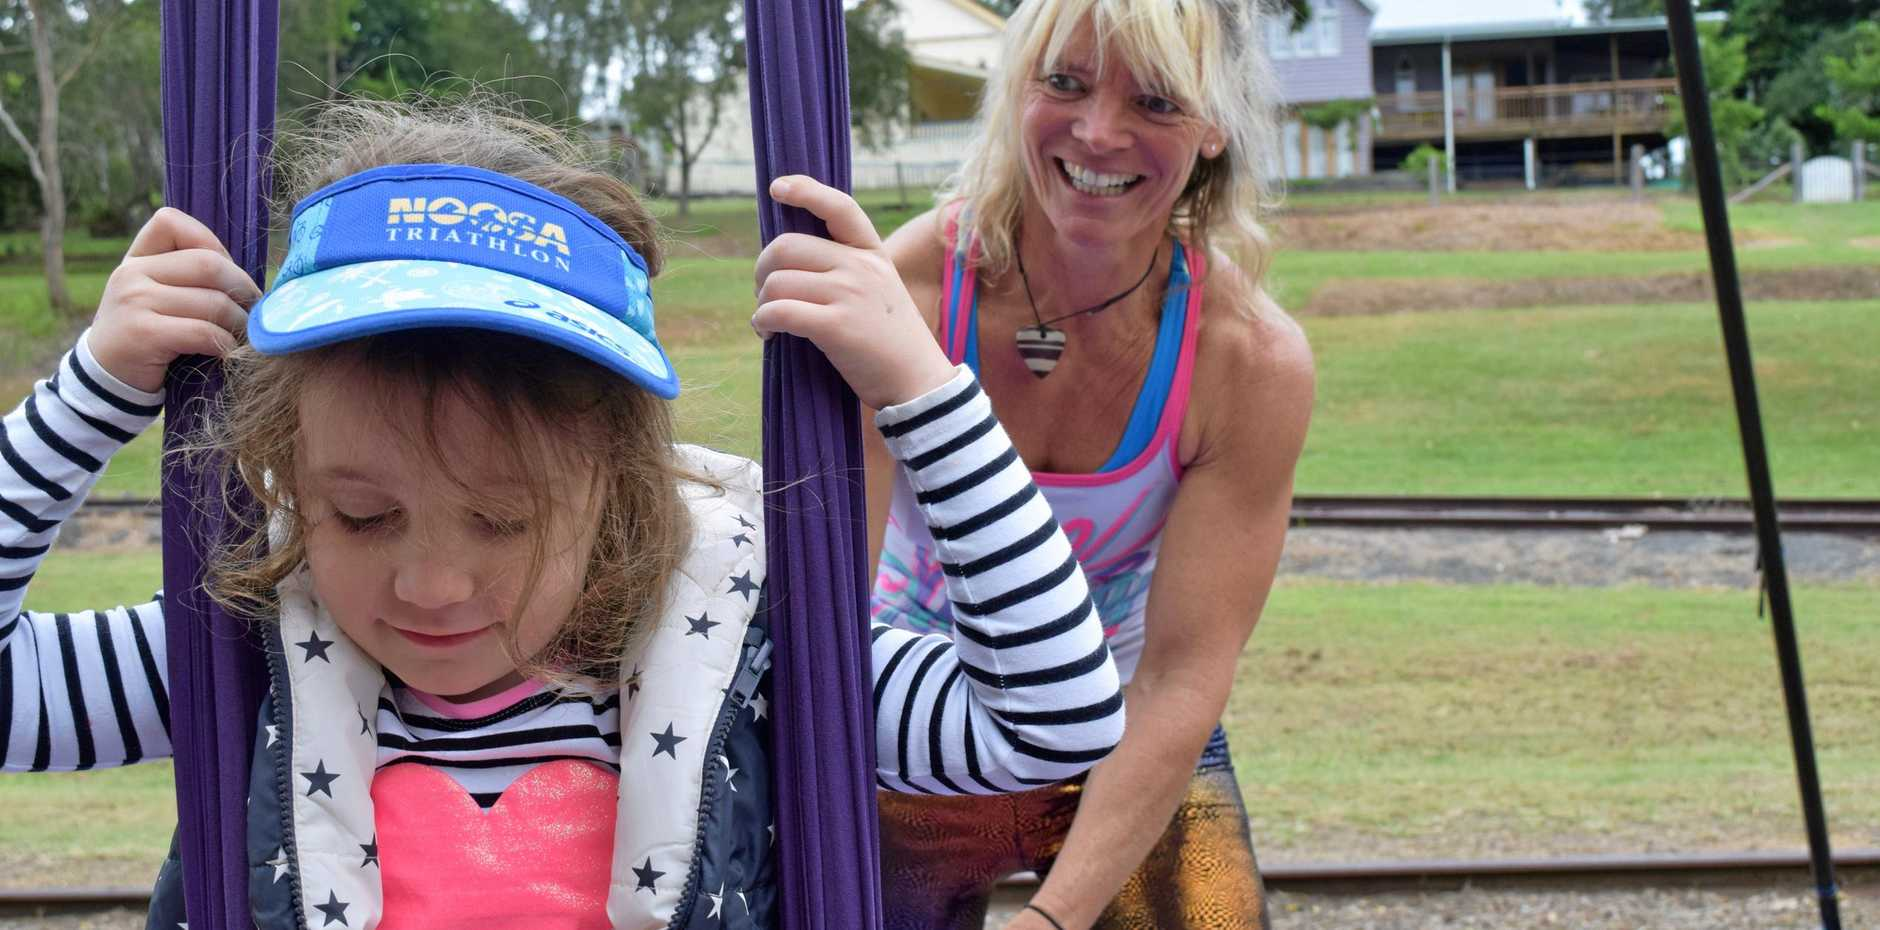 Carinne Kempler gives a helpful push to Jessica Robey, of Imbil, as she tried out the aerial silks acrobatic venue at Imbil's Labour Day celebrations.